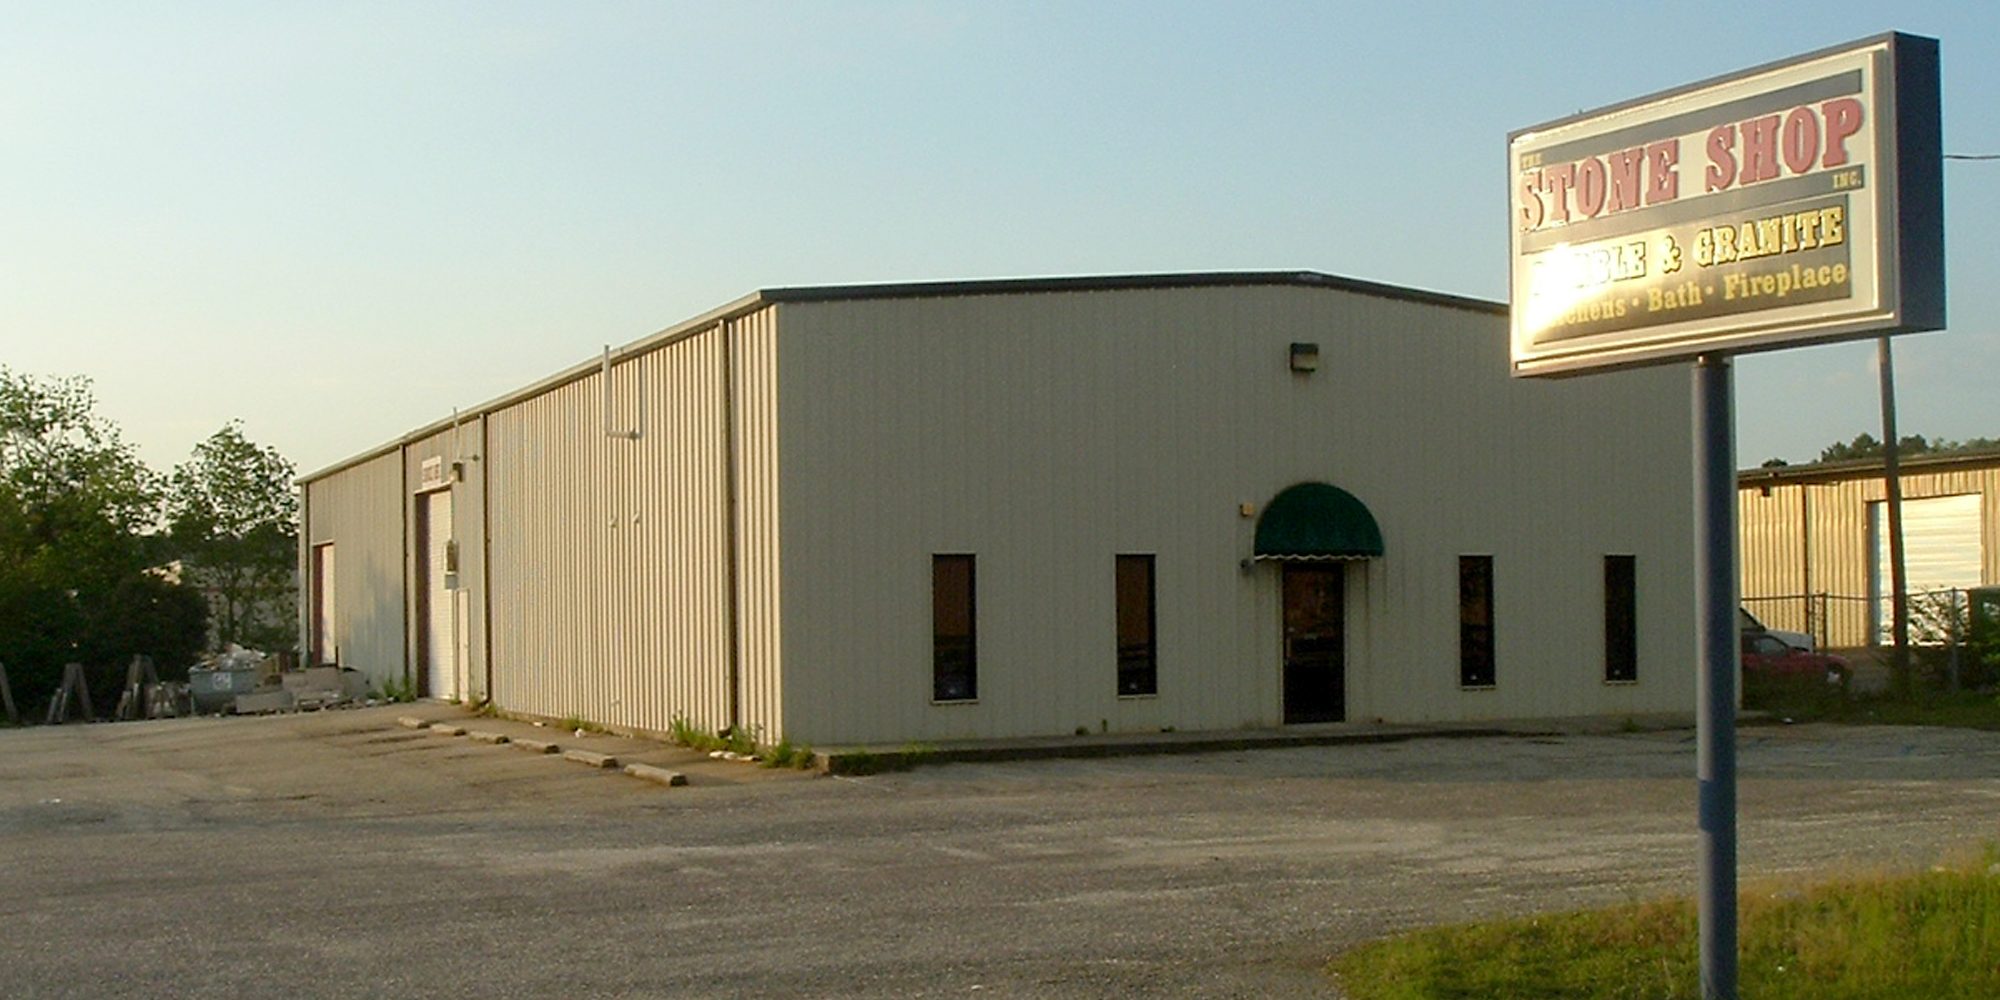 3766 Halls Mill Road - WAREHOUSEA 6,250± square foot office/warehouse located on the north side of Halls Mill Road, between Azalea Road and the Interstate 65 Service Road. The building is 100% occupied.Tenant: The Stone Shop